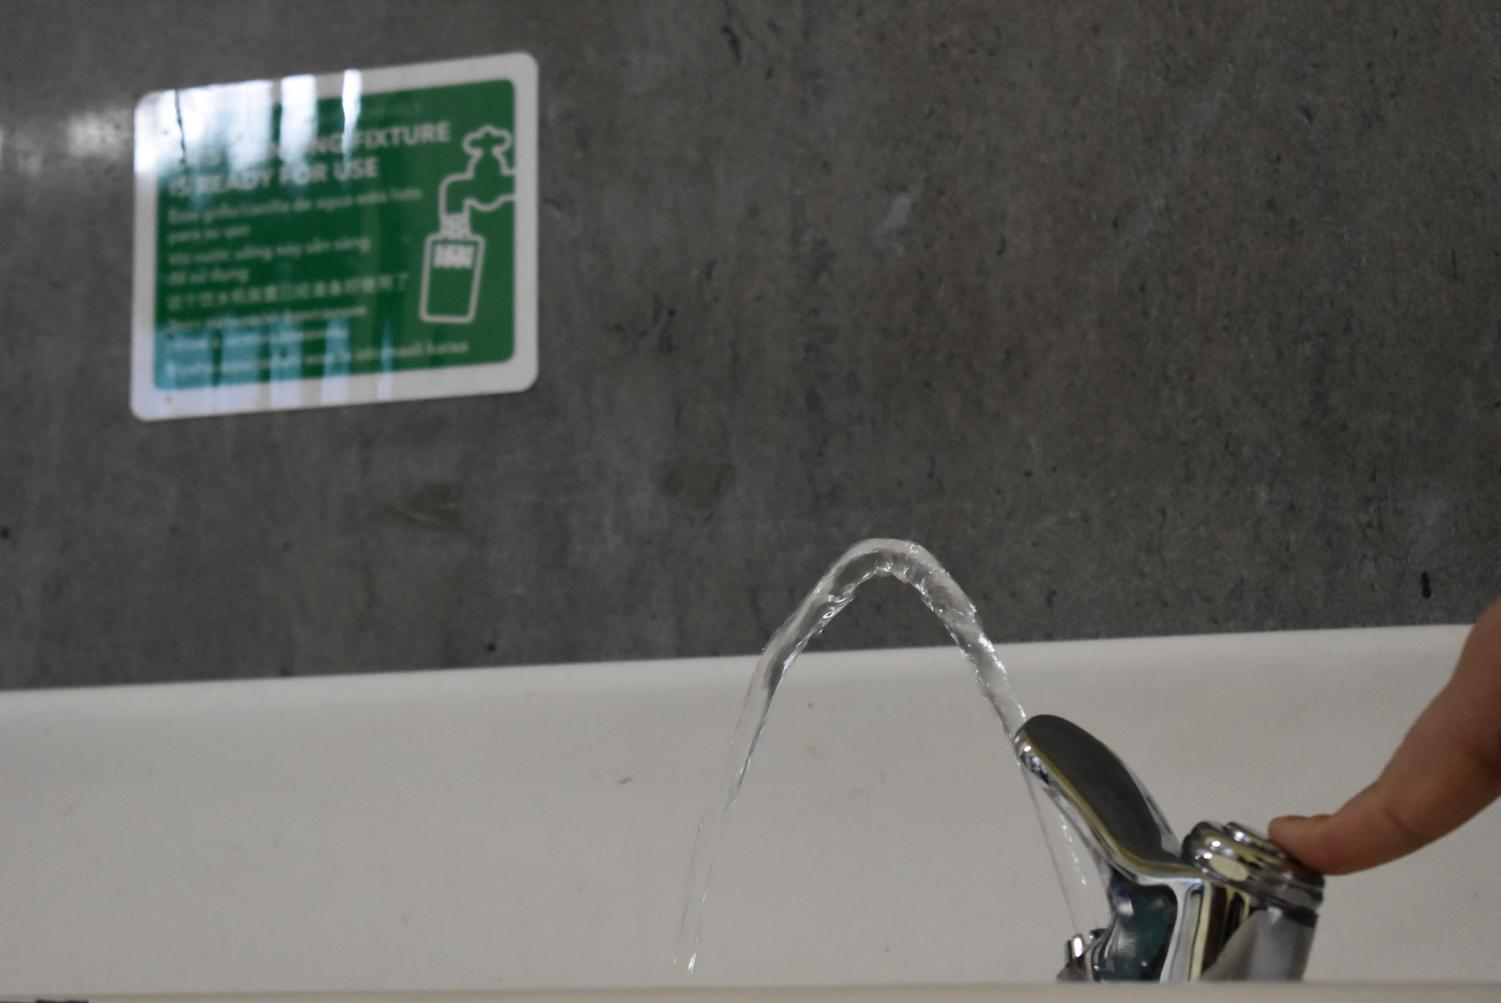 Students can now safely drink from several fixtures around the building.